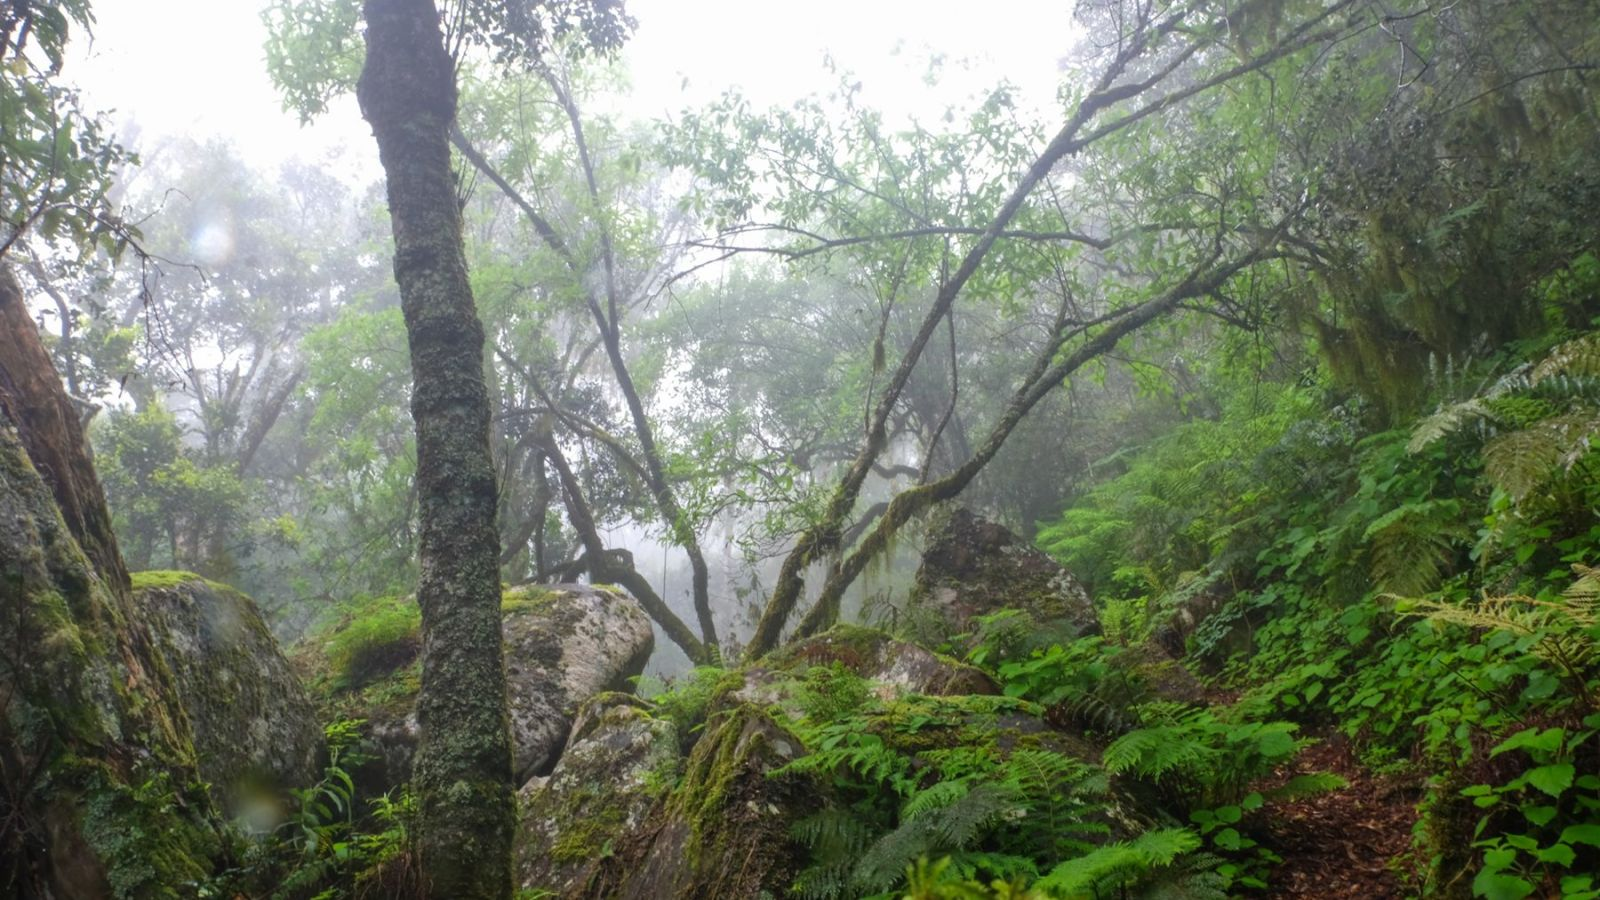 a photo of the misty forest on the amathole hiking trail.